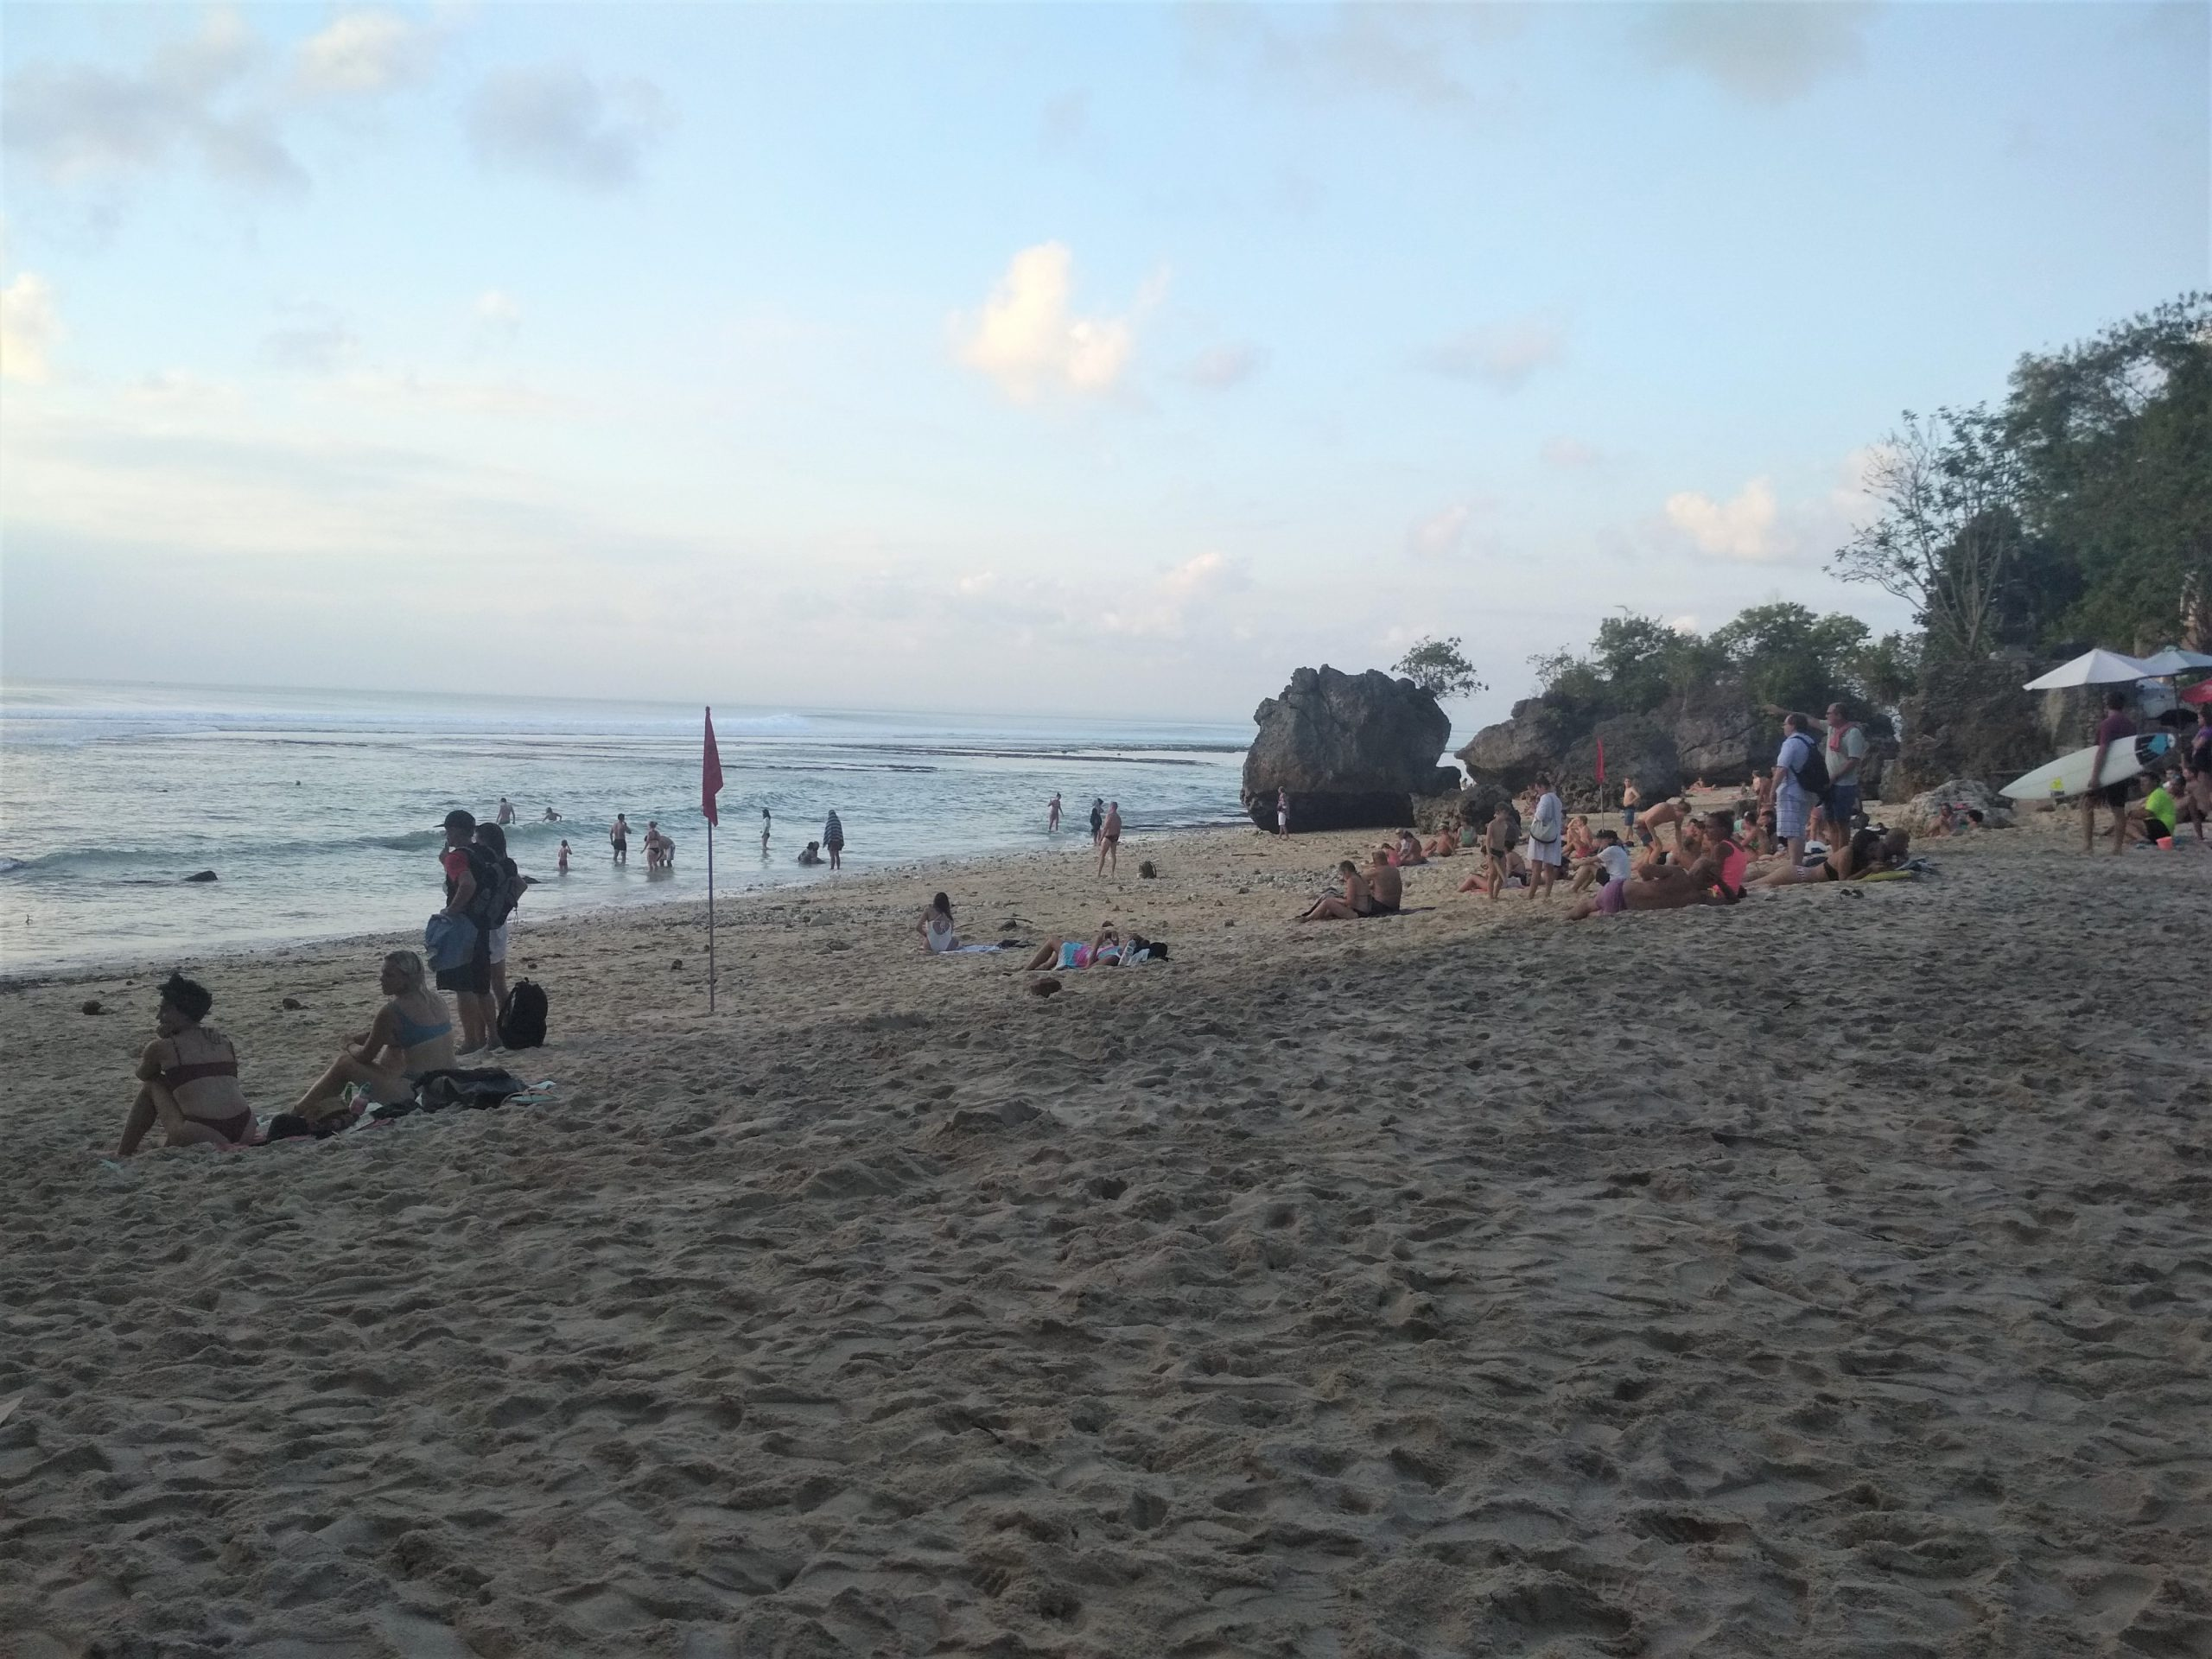 Bali Playas de Uluwatu Padang Padang 1 scaled - The Uluwatu Temple and the surrounding beaches, travel guide